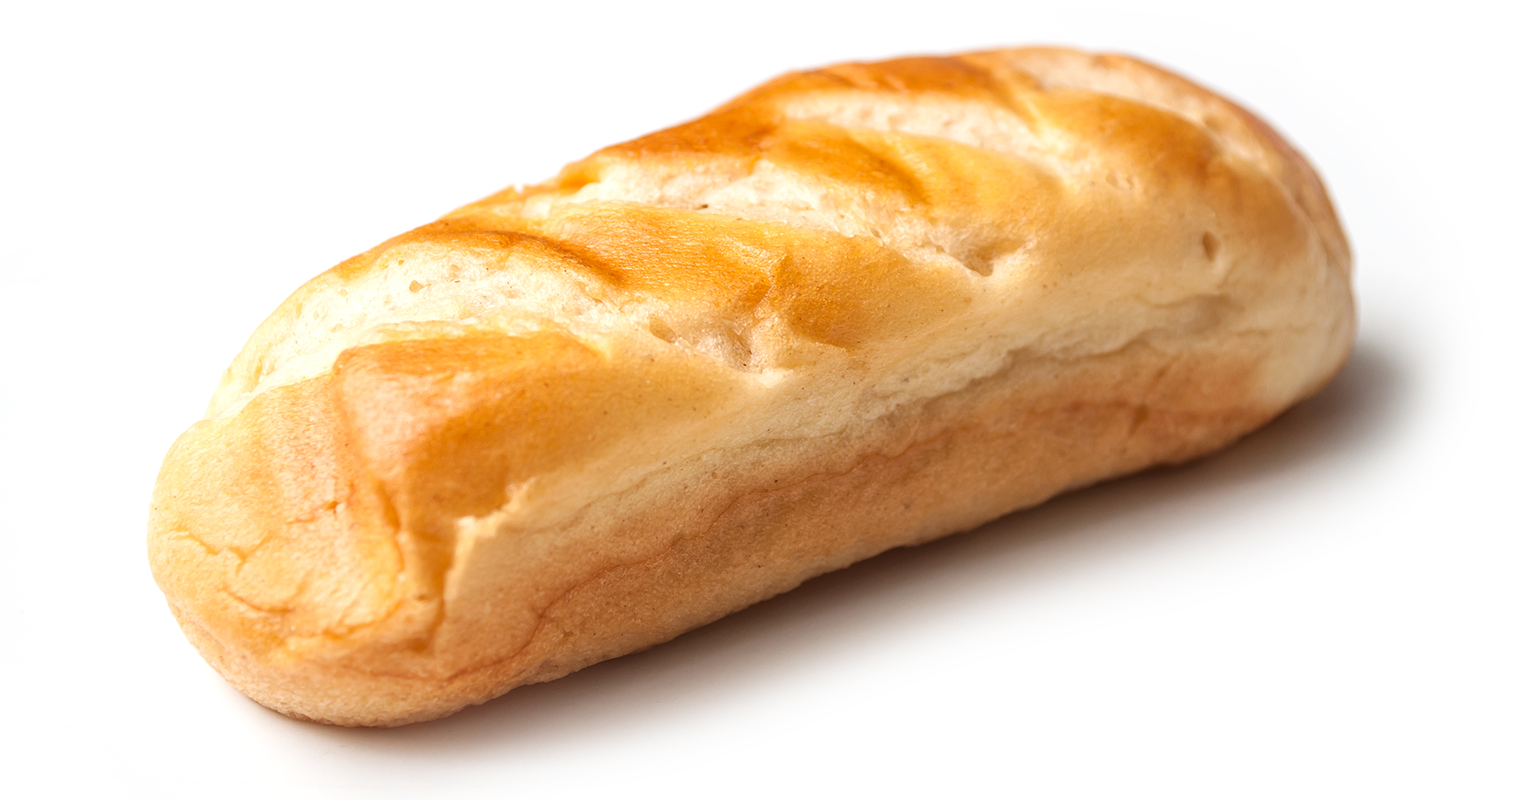 Flavor Of The Week Japan S Soft And Fluffy Milk Bread Restaurant Hospitality Choose from 7200+ bread graphic resources and download in the form of png, eps, ai or psd. flavor of the week japan s soft and fluffy milk bread restaurant hospitality